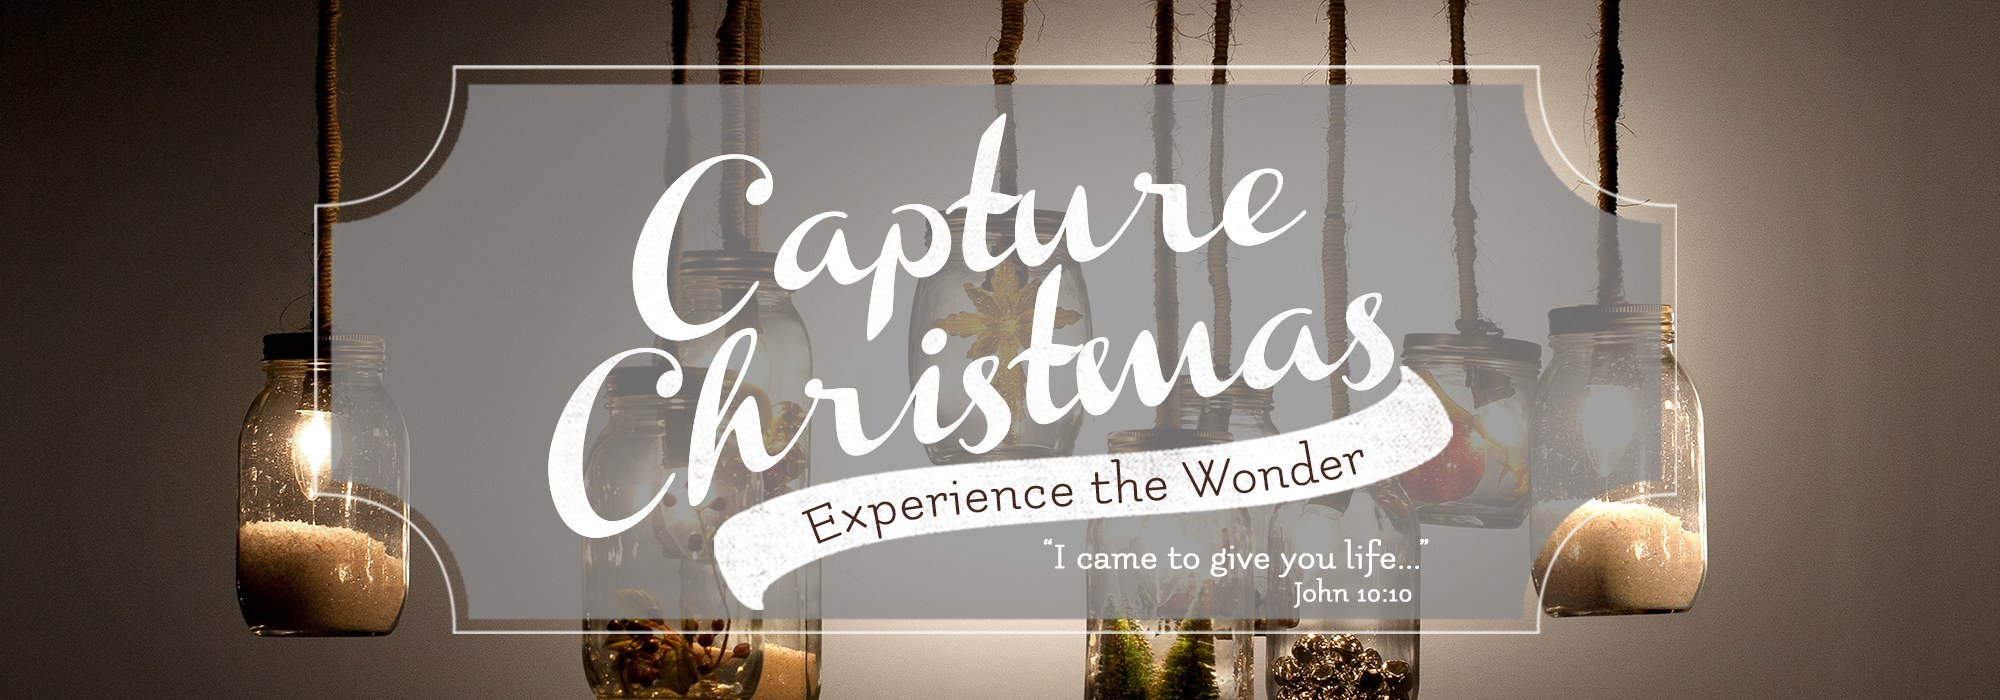 Capture Christmas